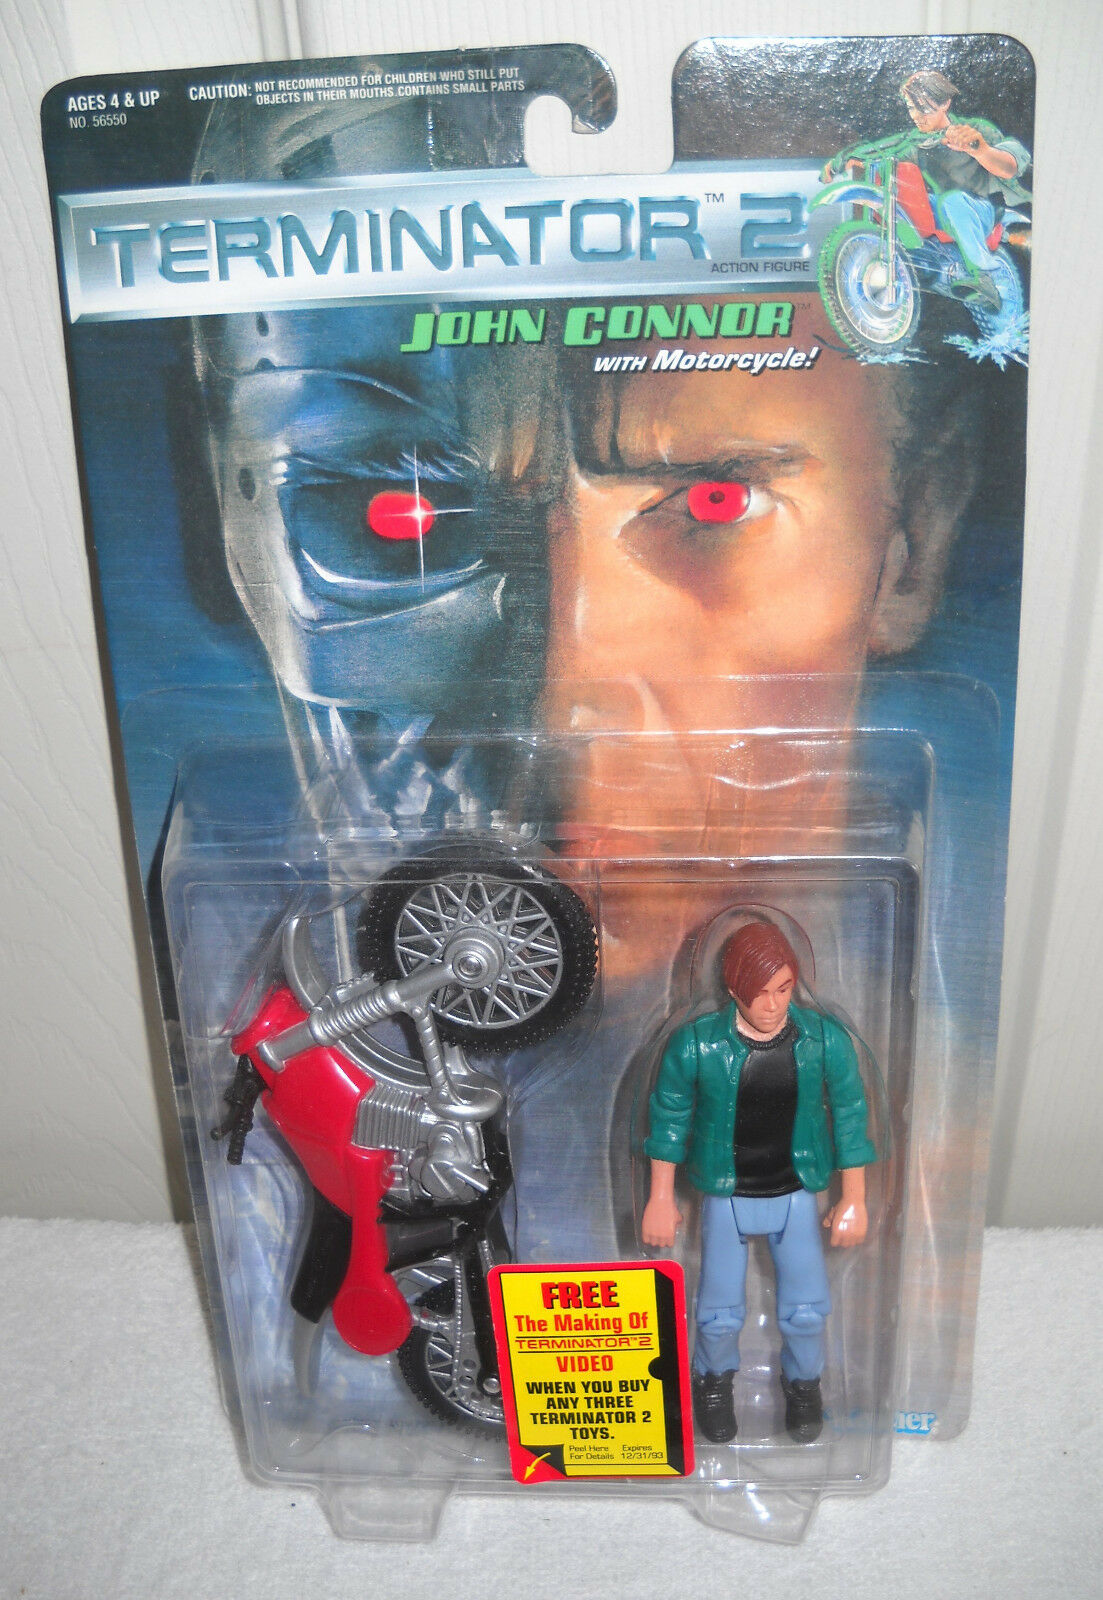 3696 RARE NRFC Vintage Kenner Terminator 2 John Connor with Motorcycle